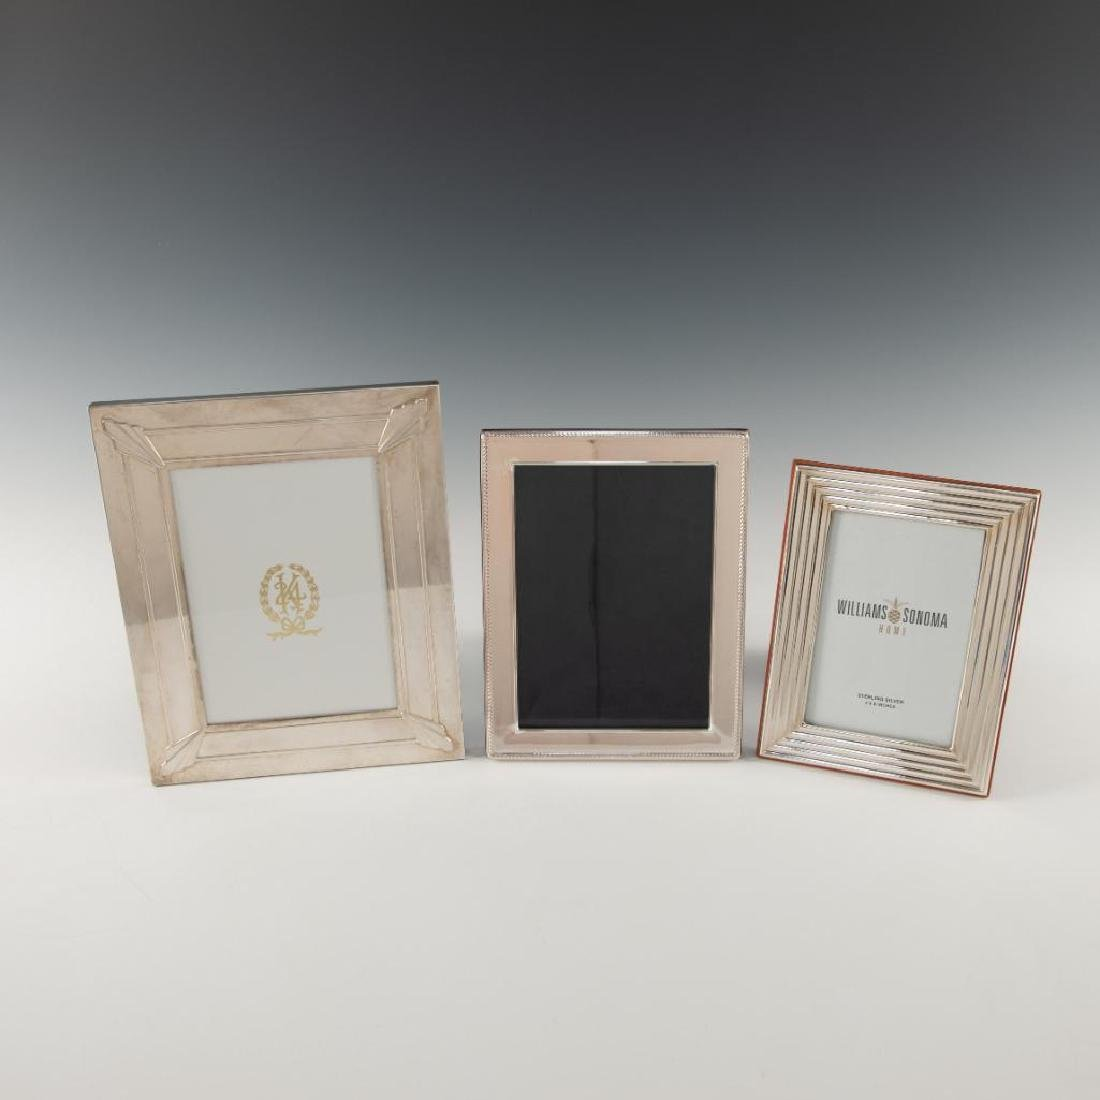 GROUP OF 3 STERLING SILVER PICTURE FRAMES LUNT WILLIAMS